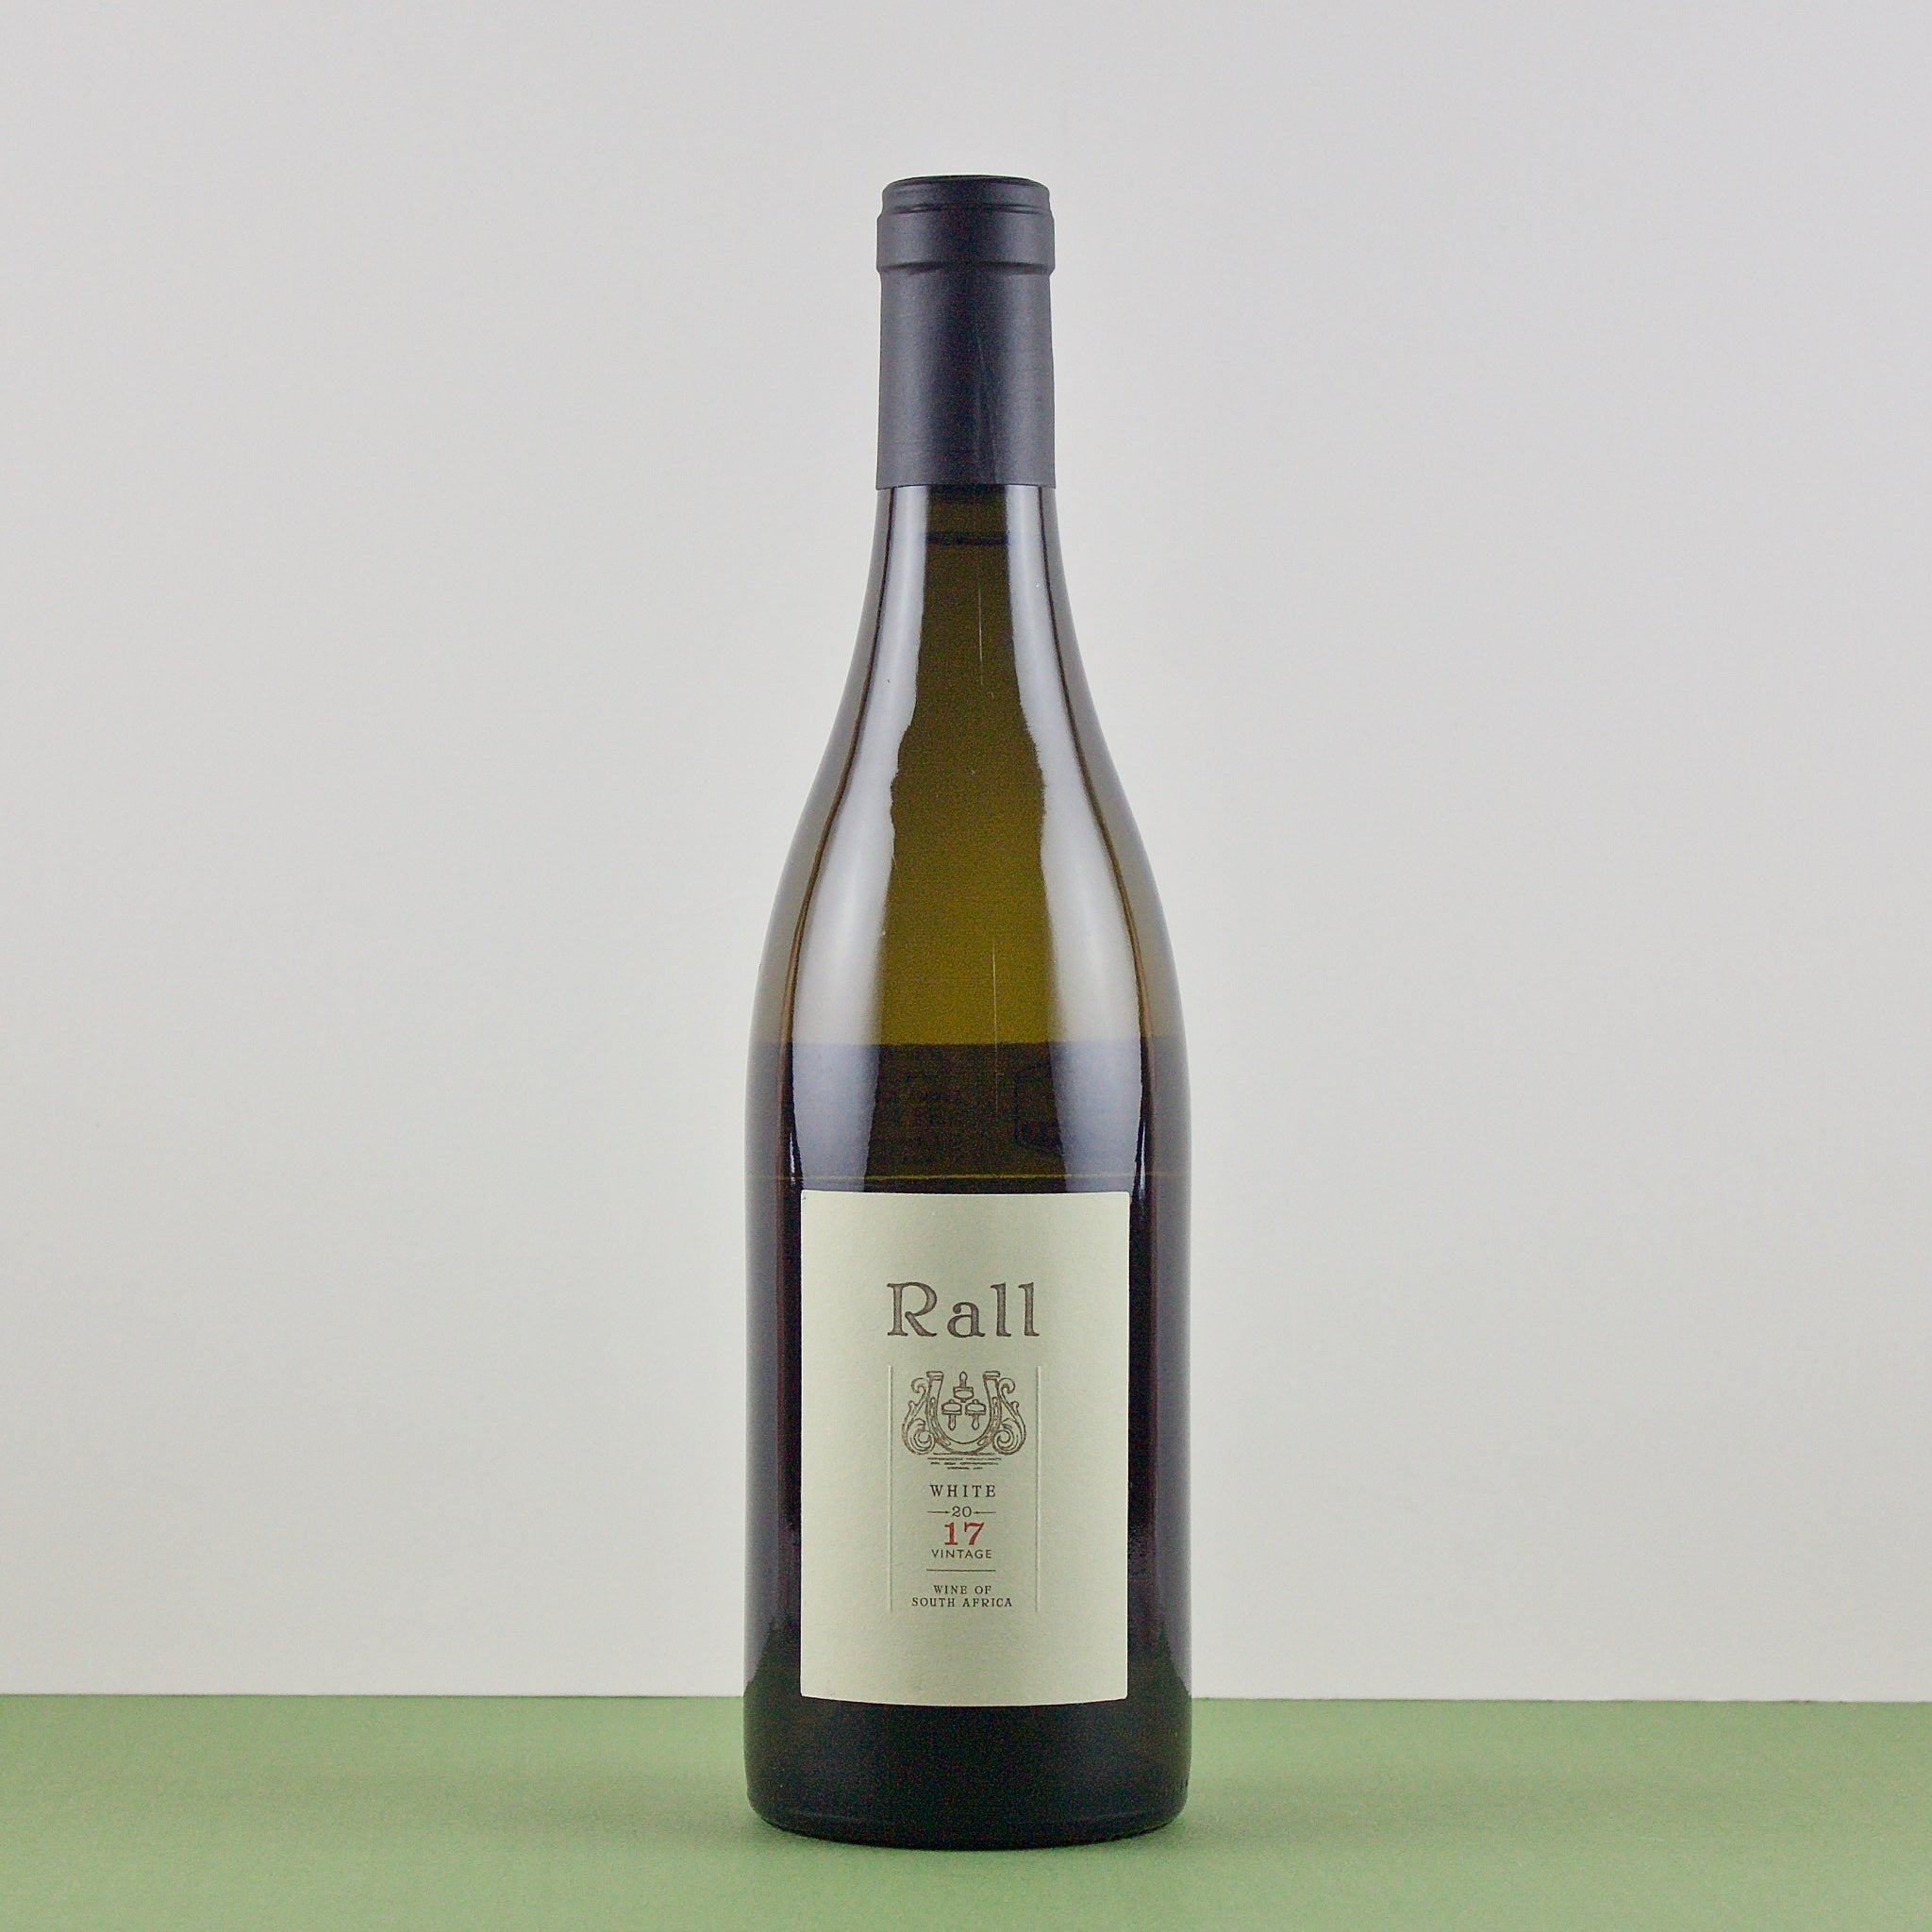 White Blend, Rall, Swartland, South Africa